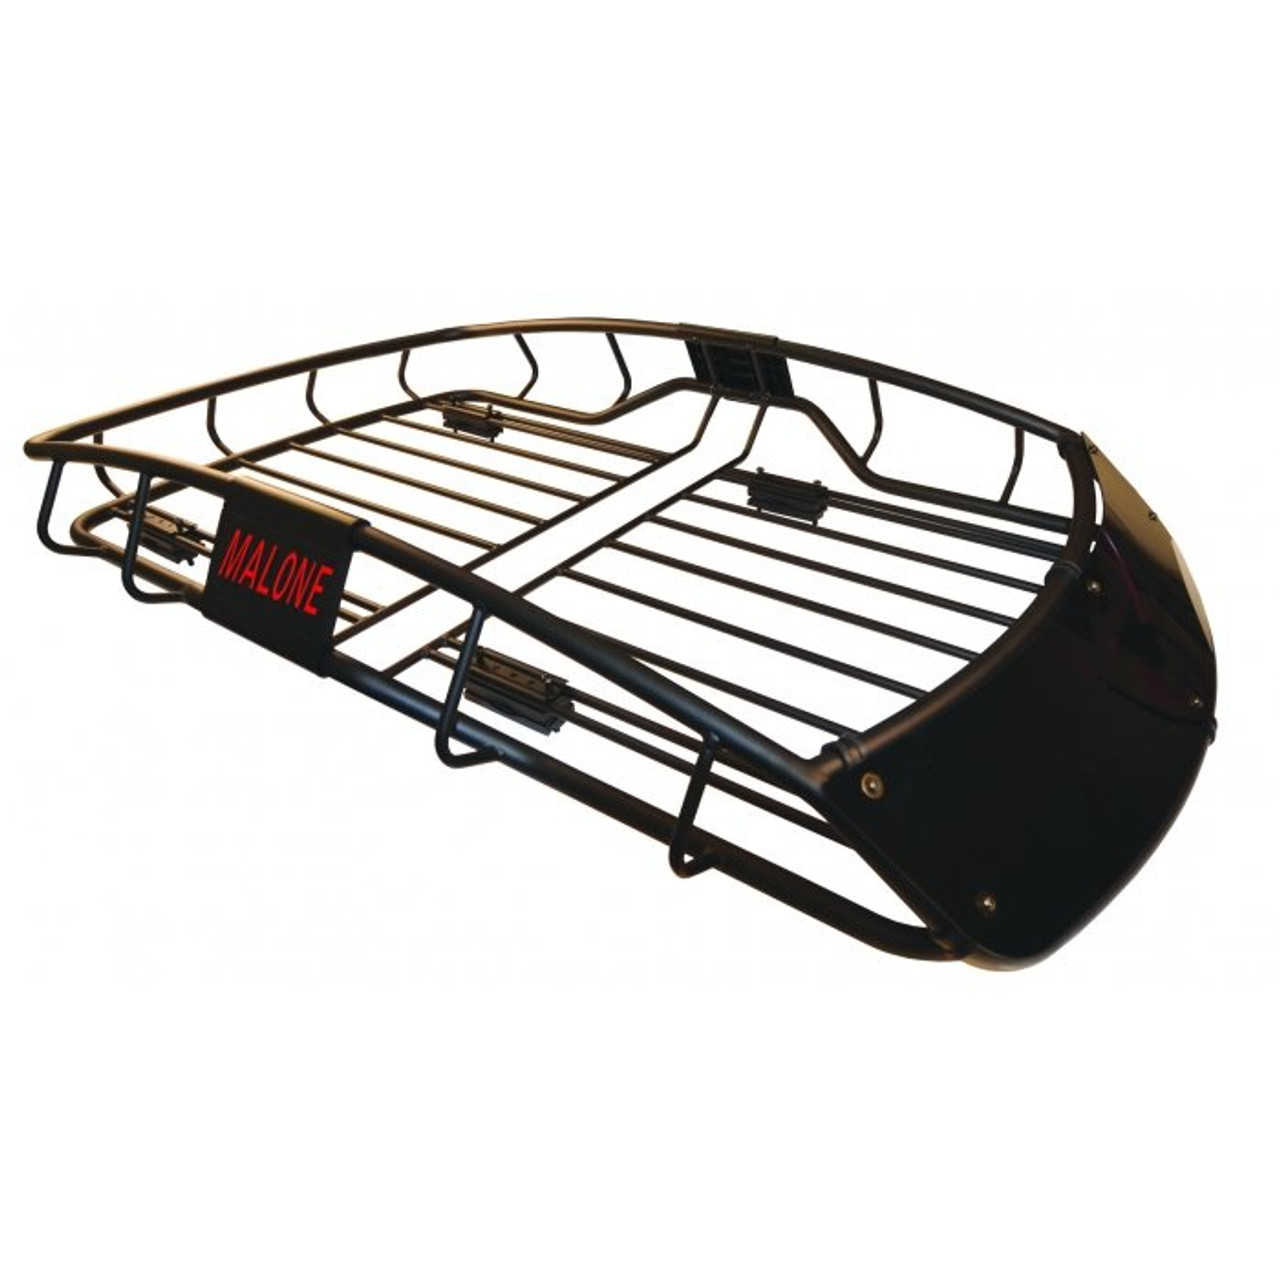 malone cargo roof basket